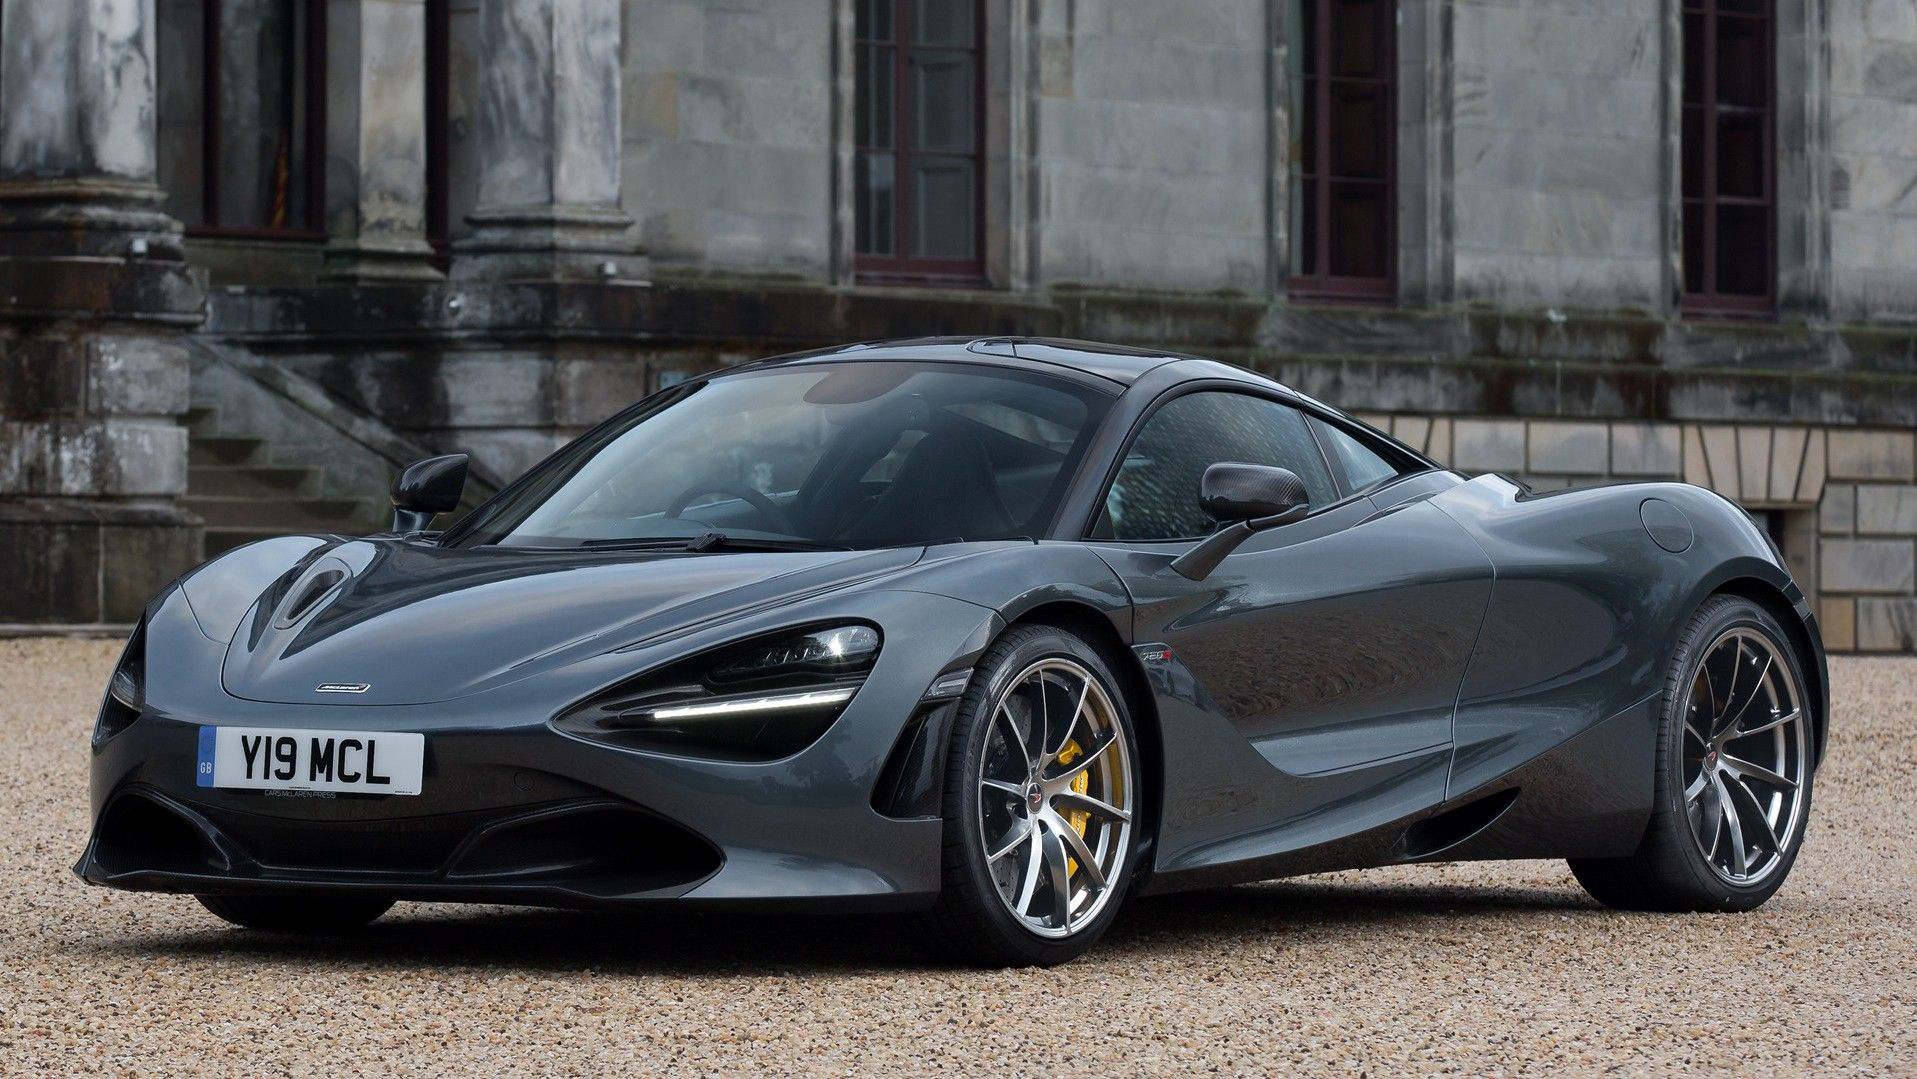 2020 Mclaren 720s coupe Front Three-quarter View